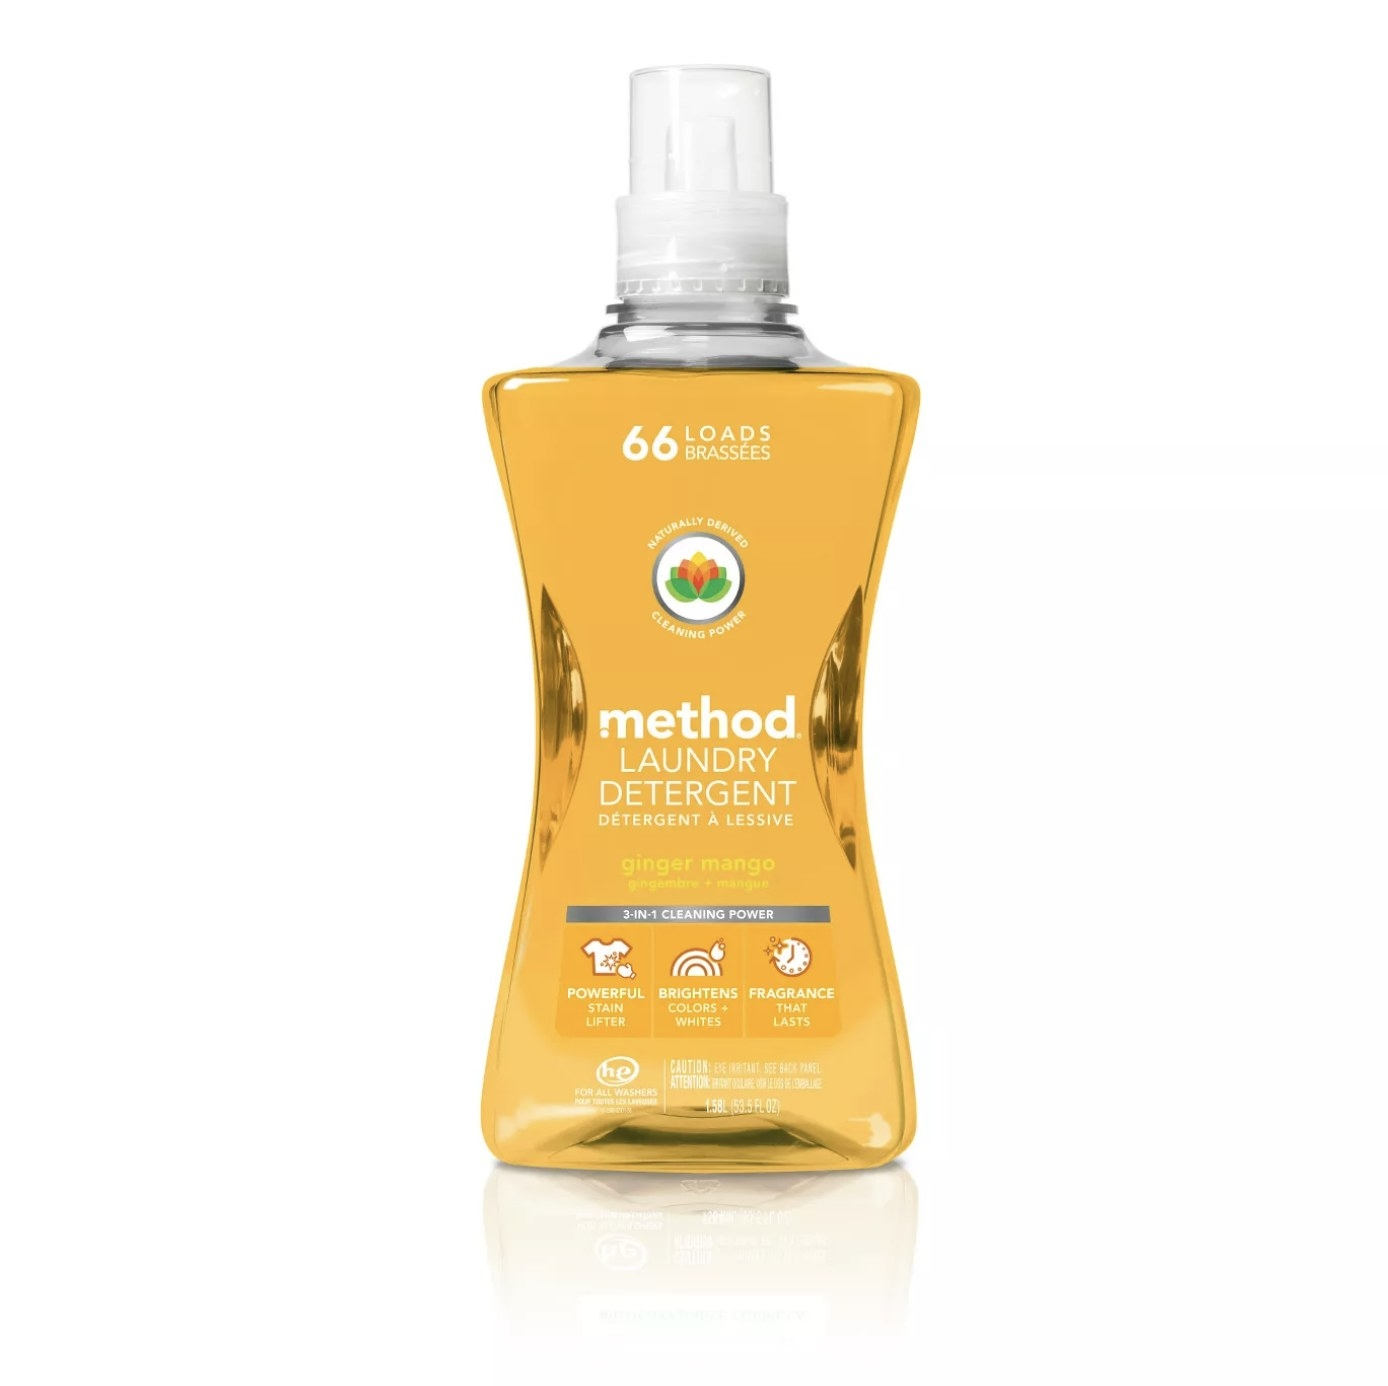 Clear bottle of Method Laundry Detergent with a mango-colored liquid inside